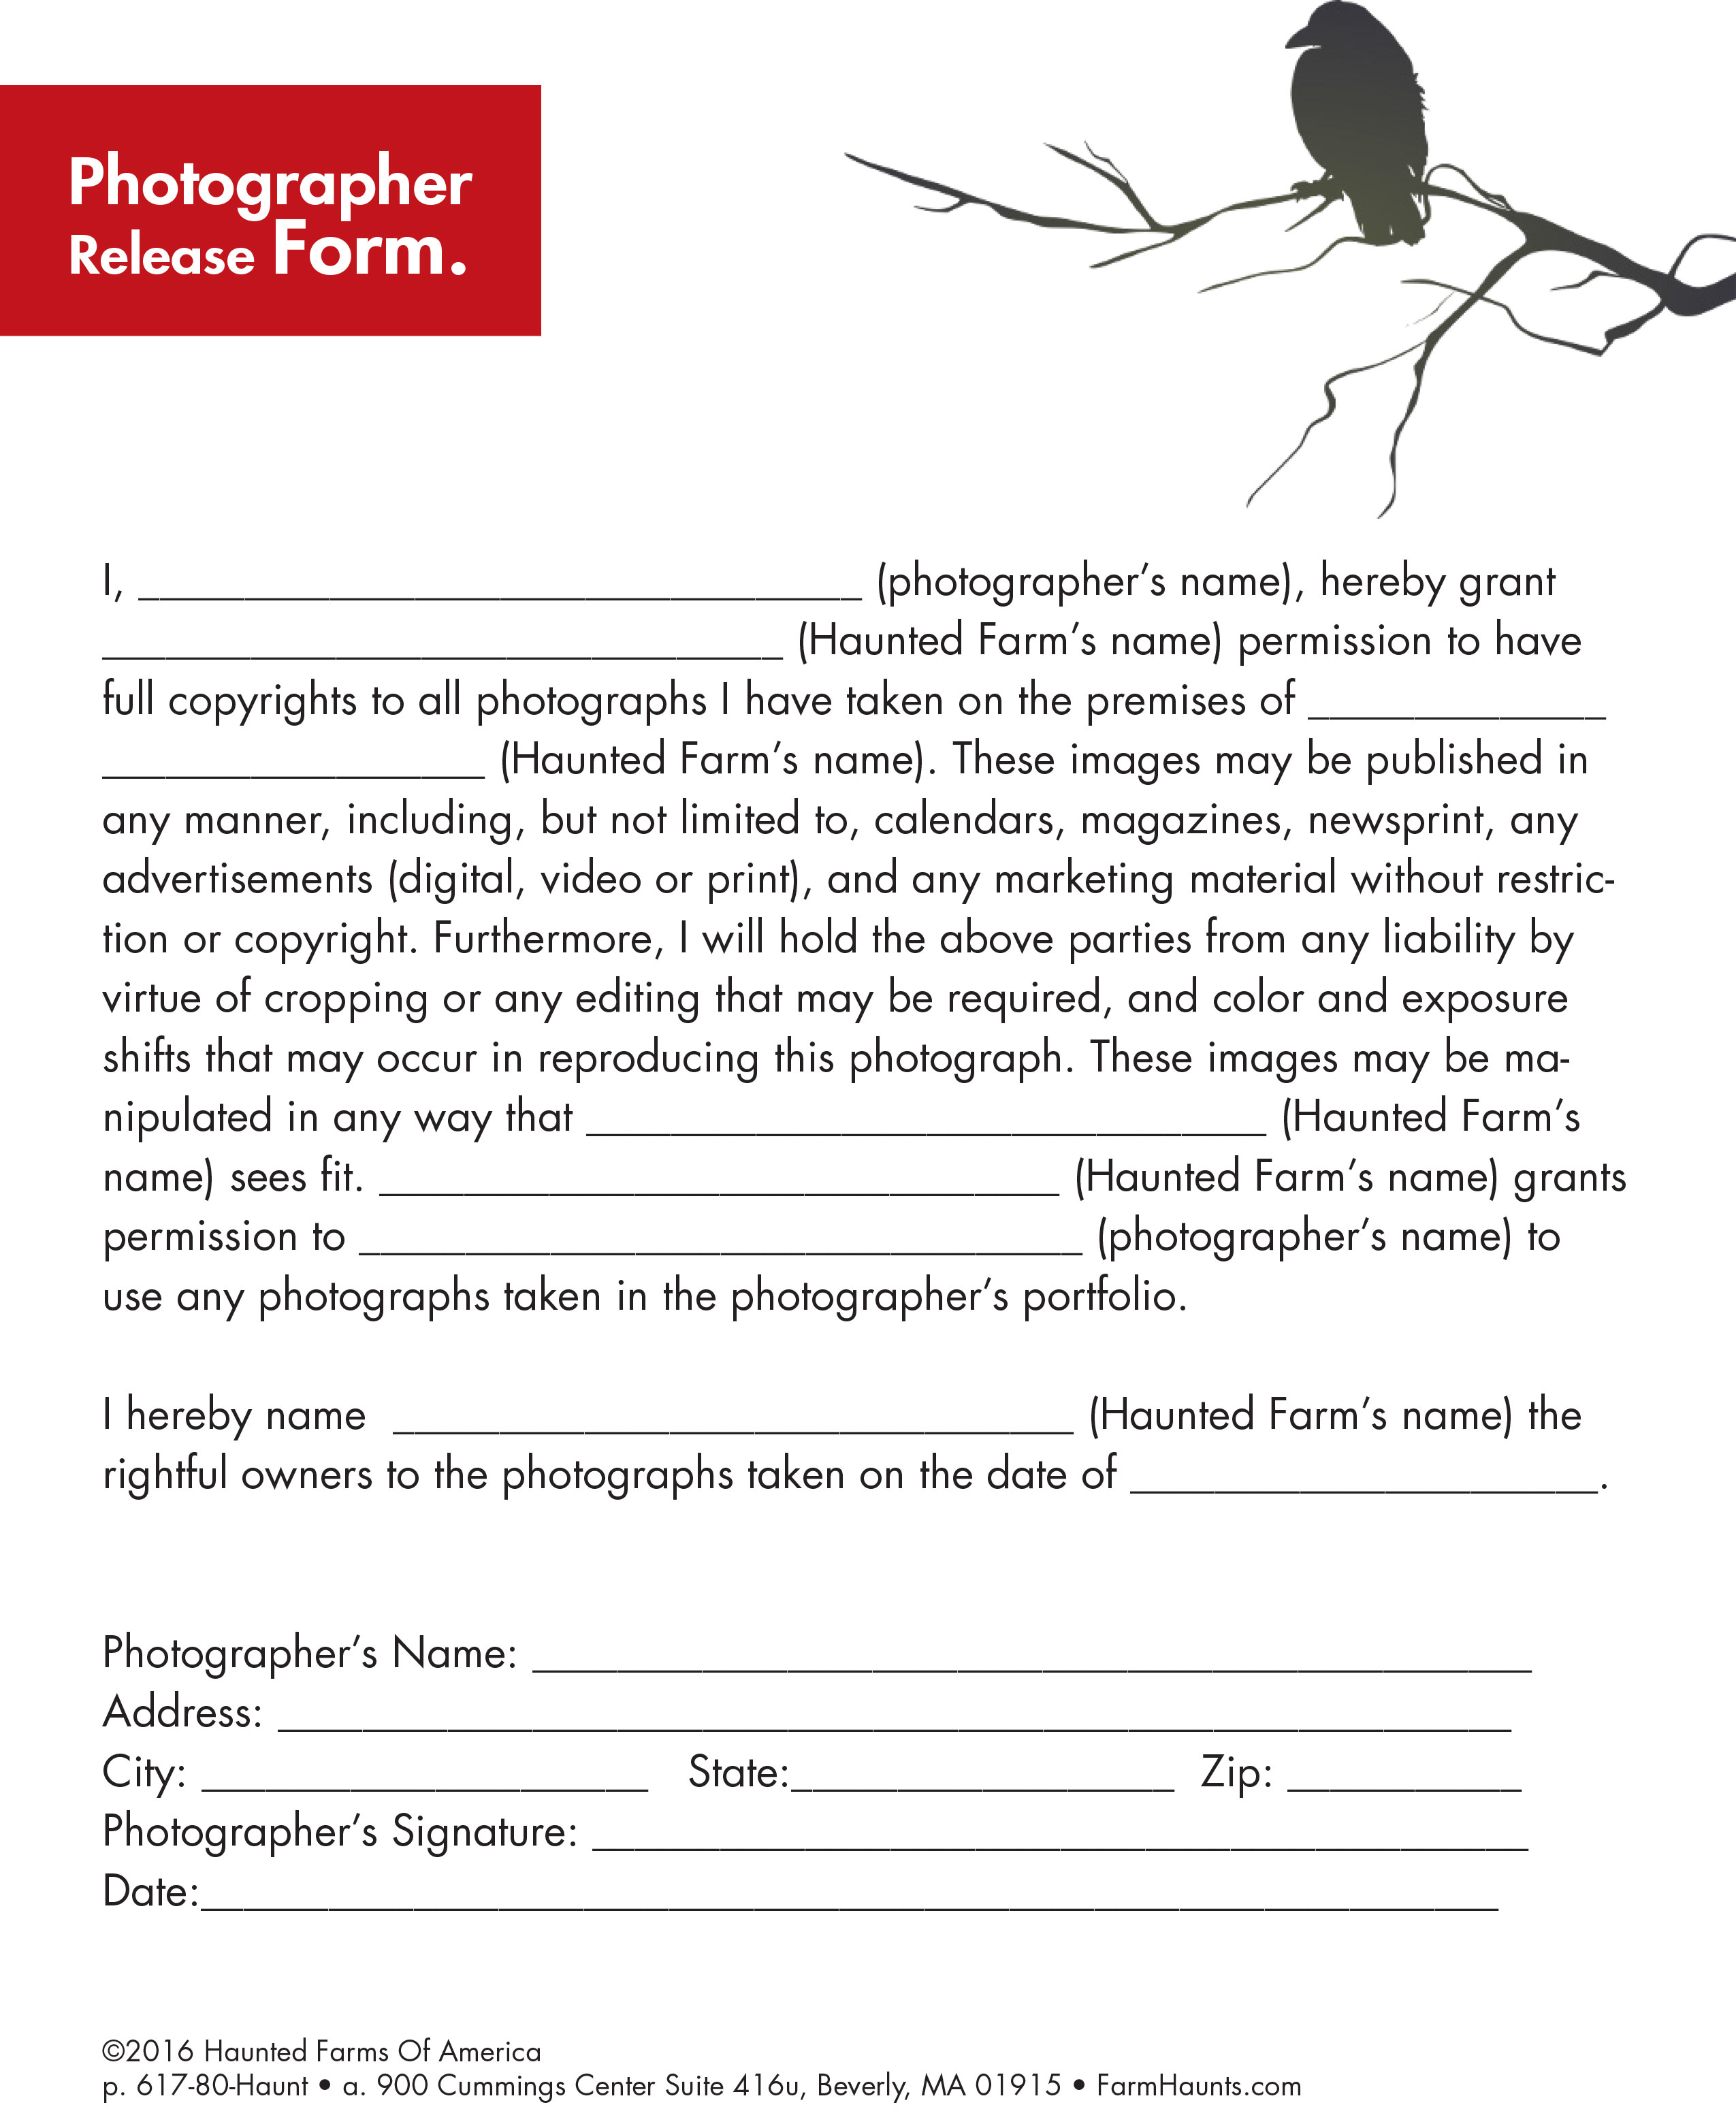 This Photographer Release Form helps protect your images from unauthorized use by the hired photographer.